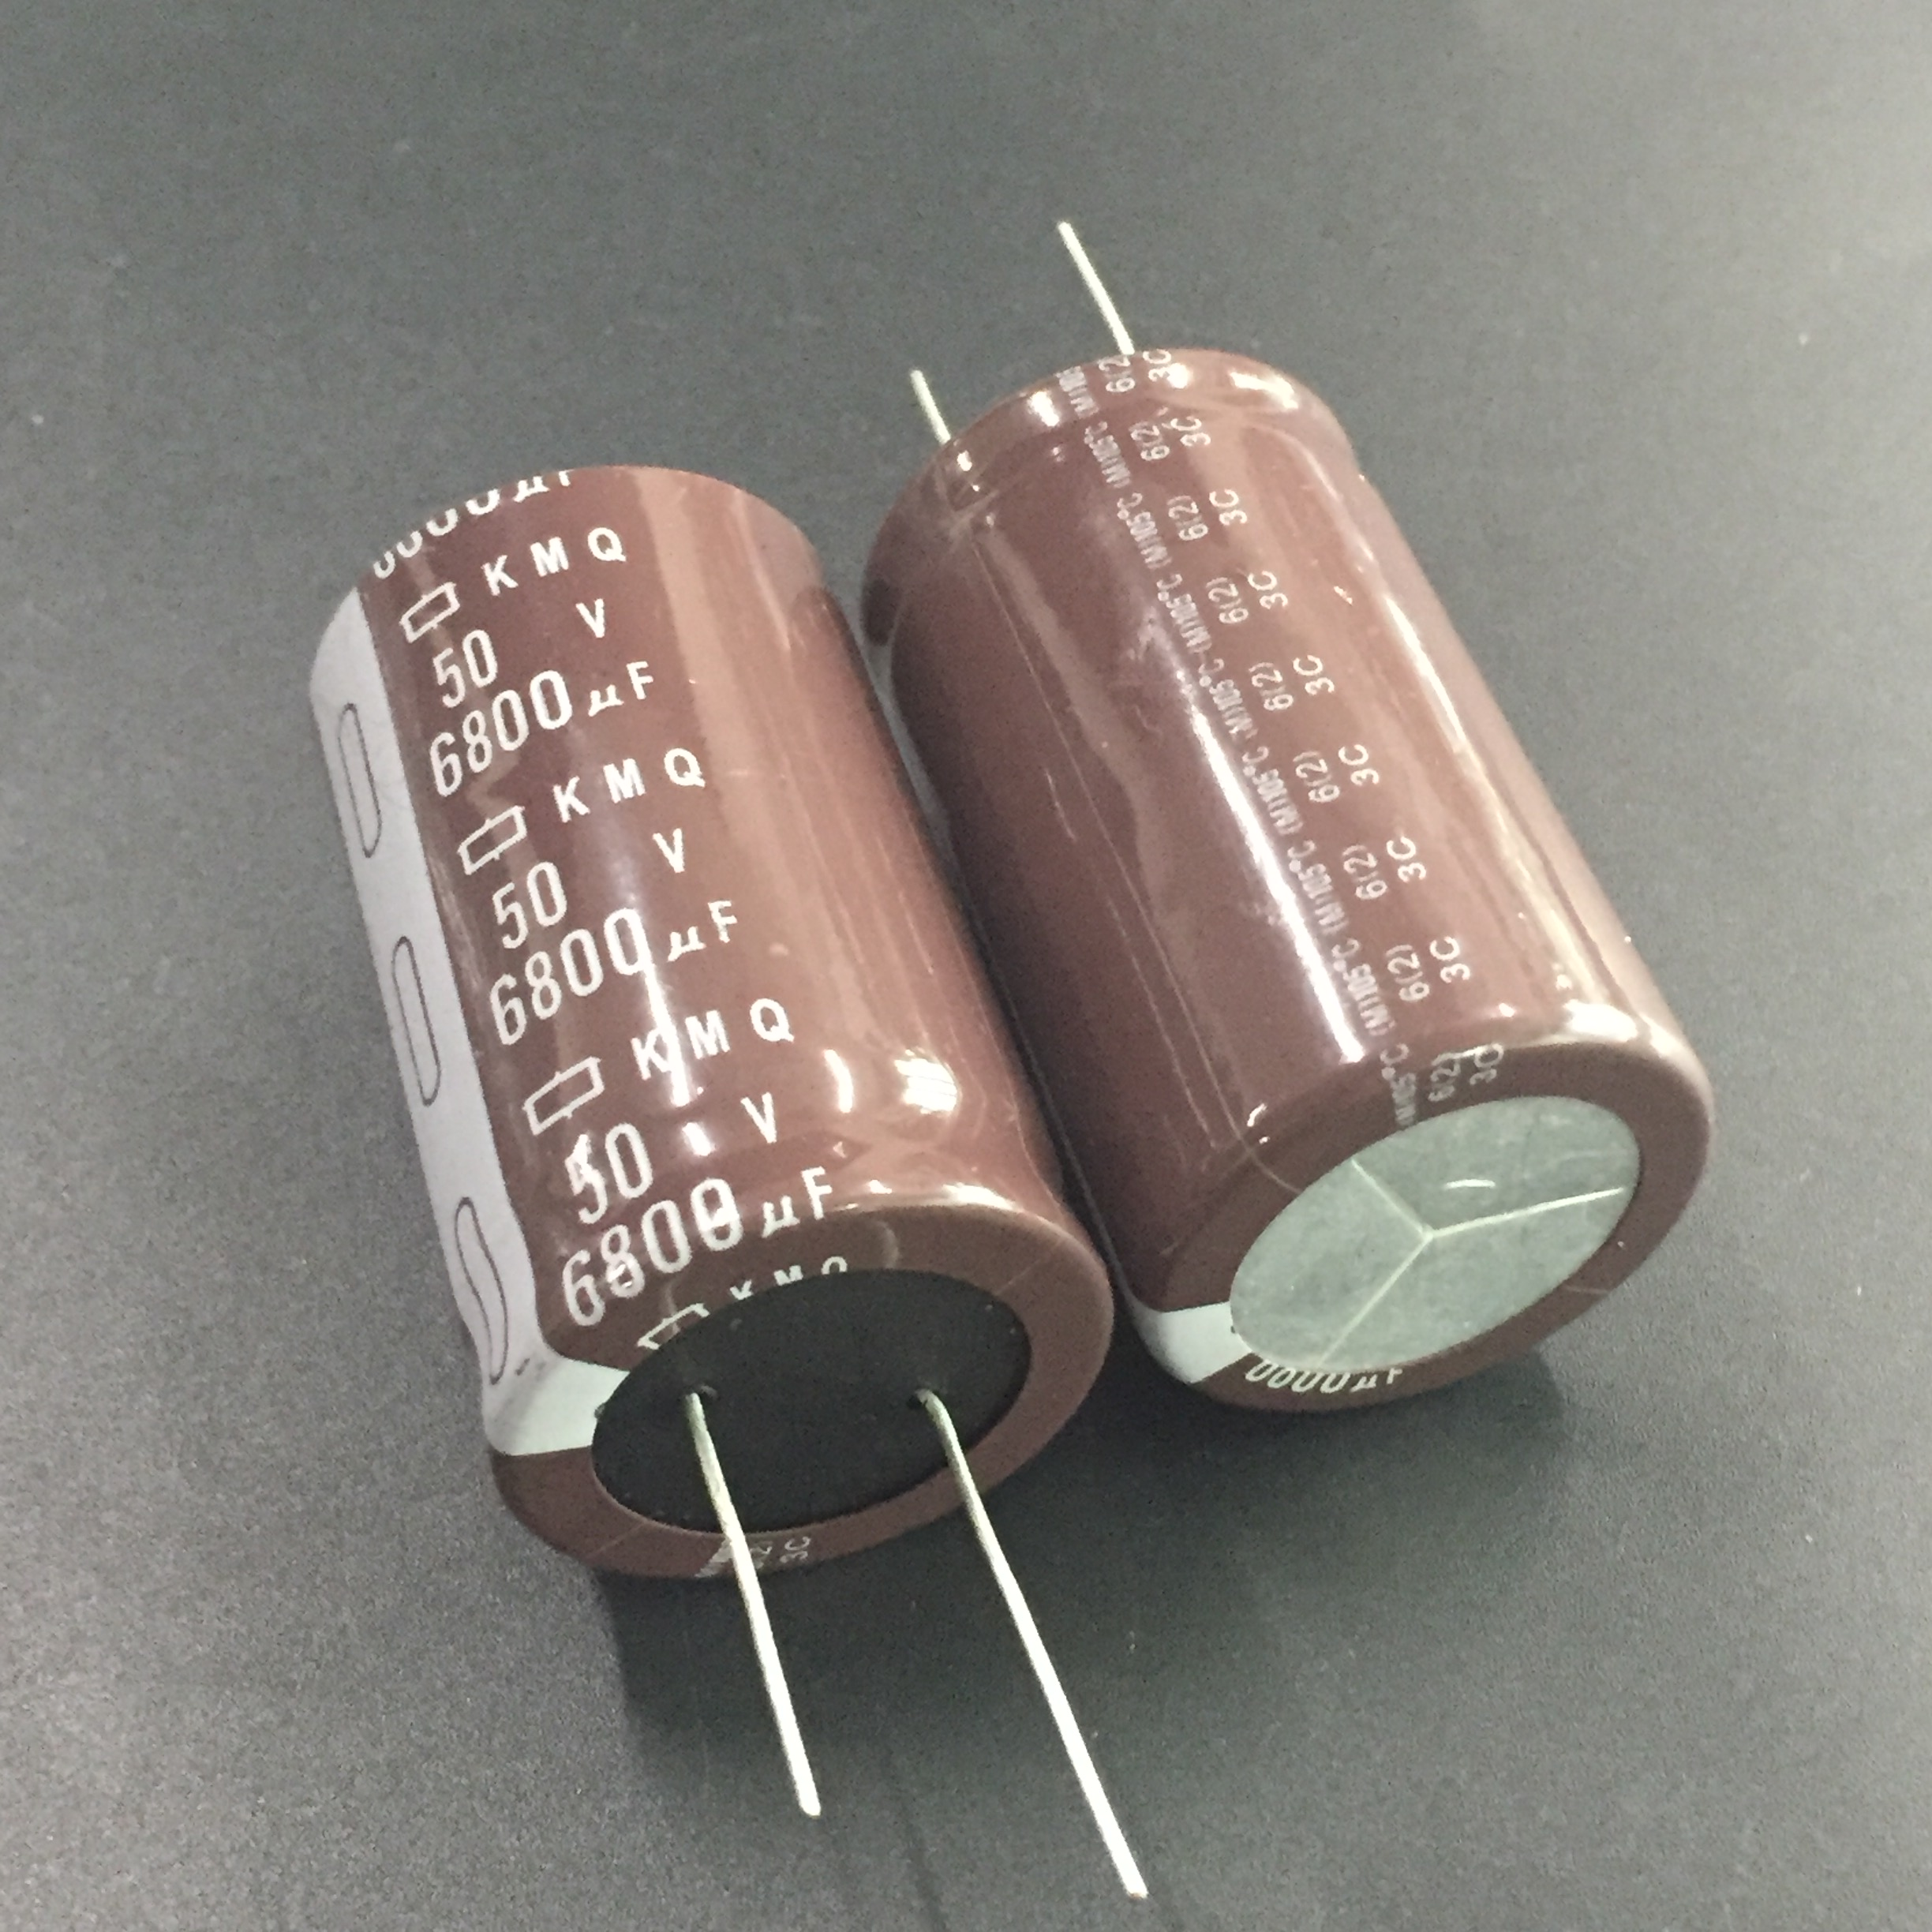 2pcs/10pcs 6800uF 50V NIPPON NCC KMQ Series 30x50mm Original 50V6800uF PSU/AUDIO Capacitor image